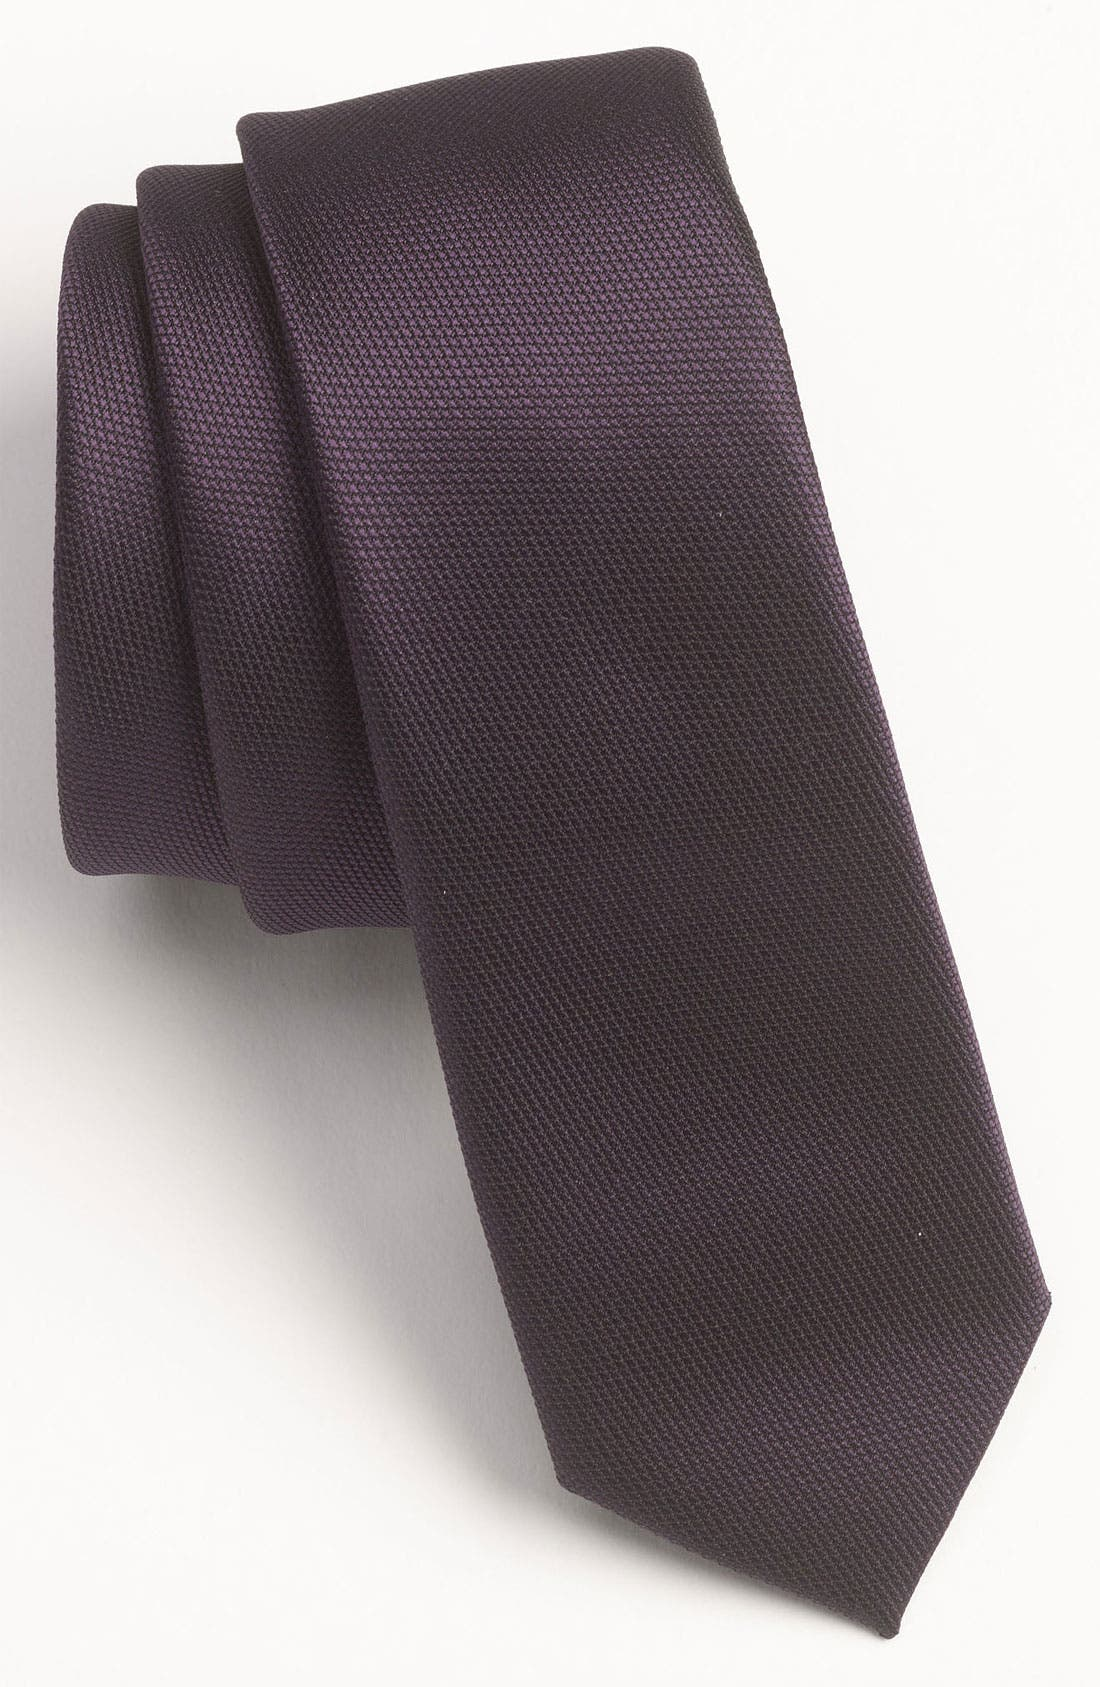 Alternate Image 1 Selected - Topman 'Winter' Tie